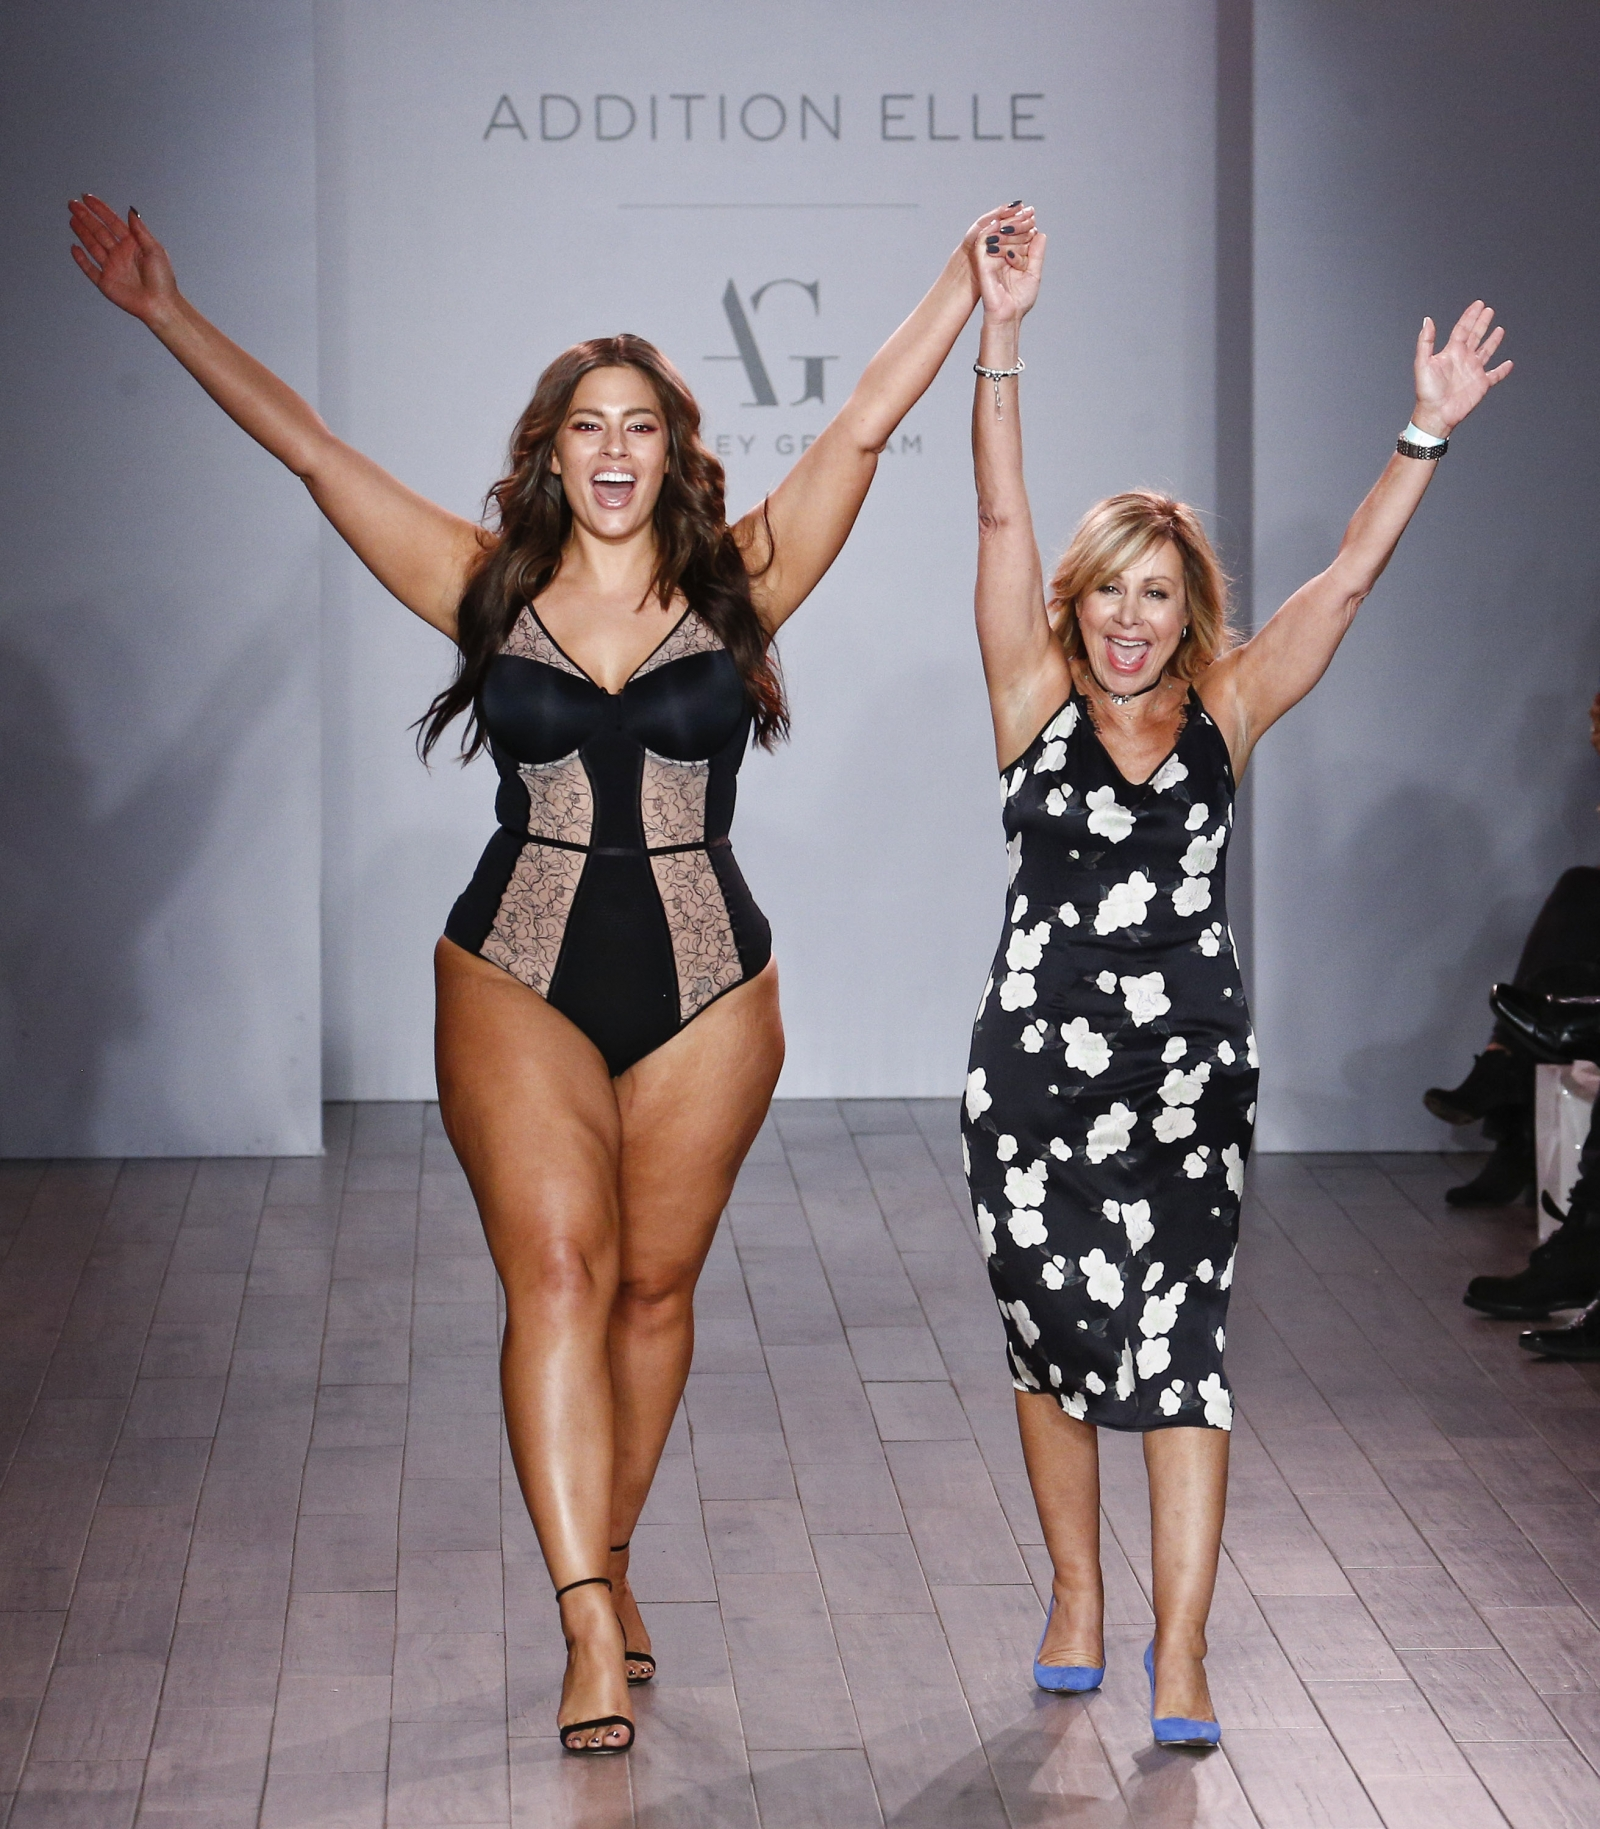 Ashley graham celebrates her collection for canadian retailer addition